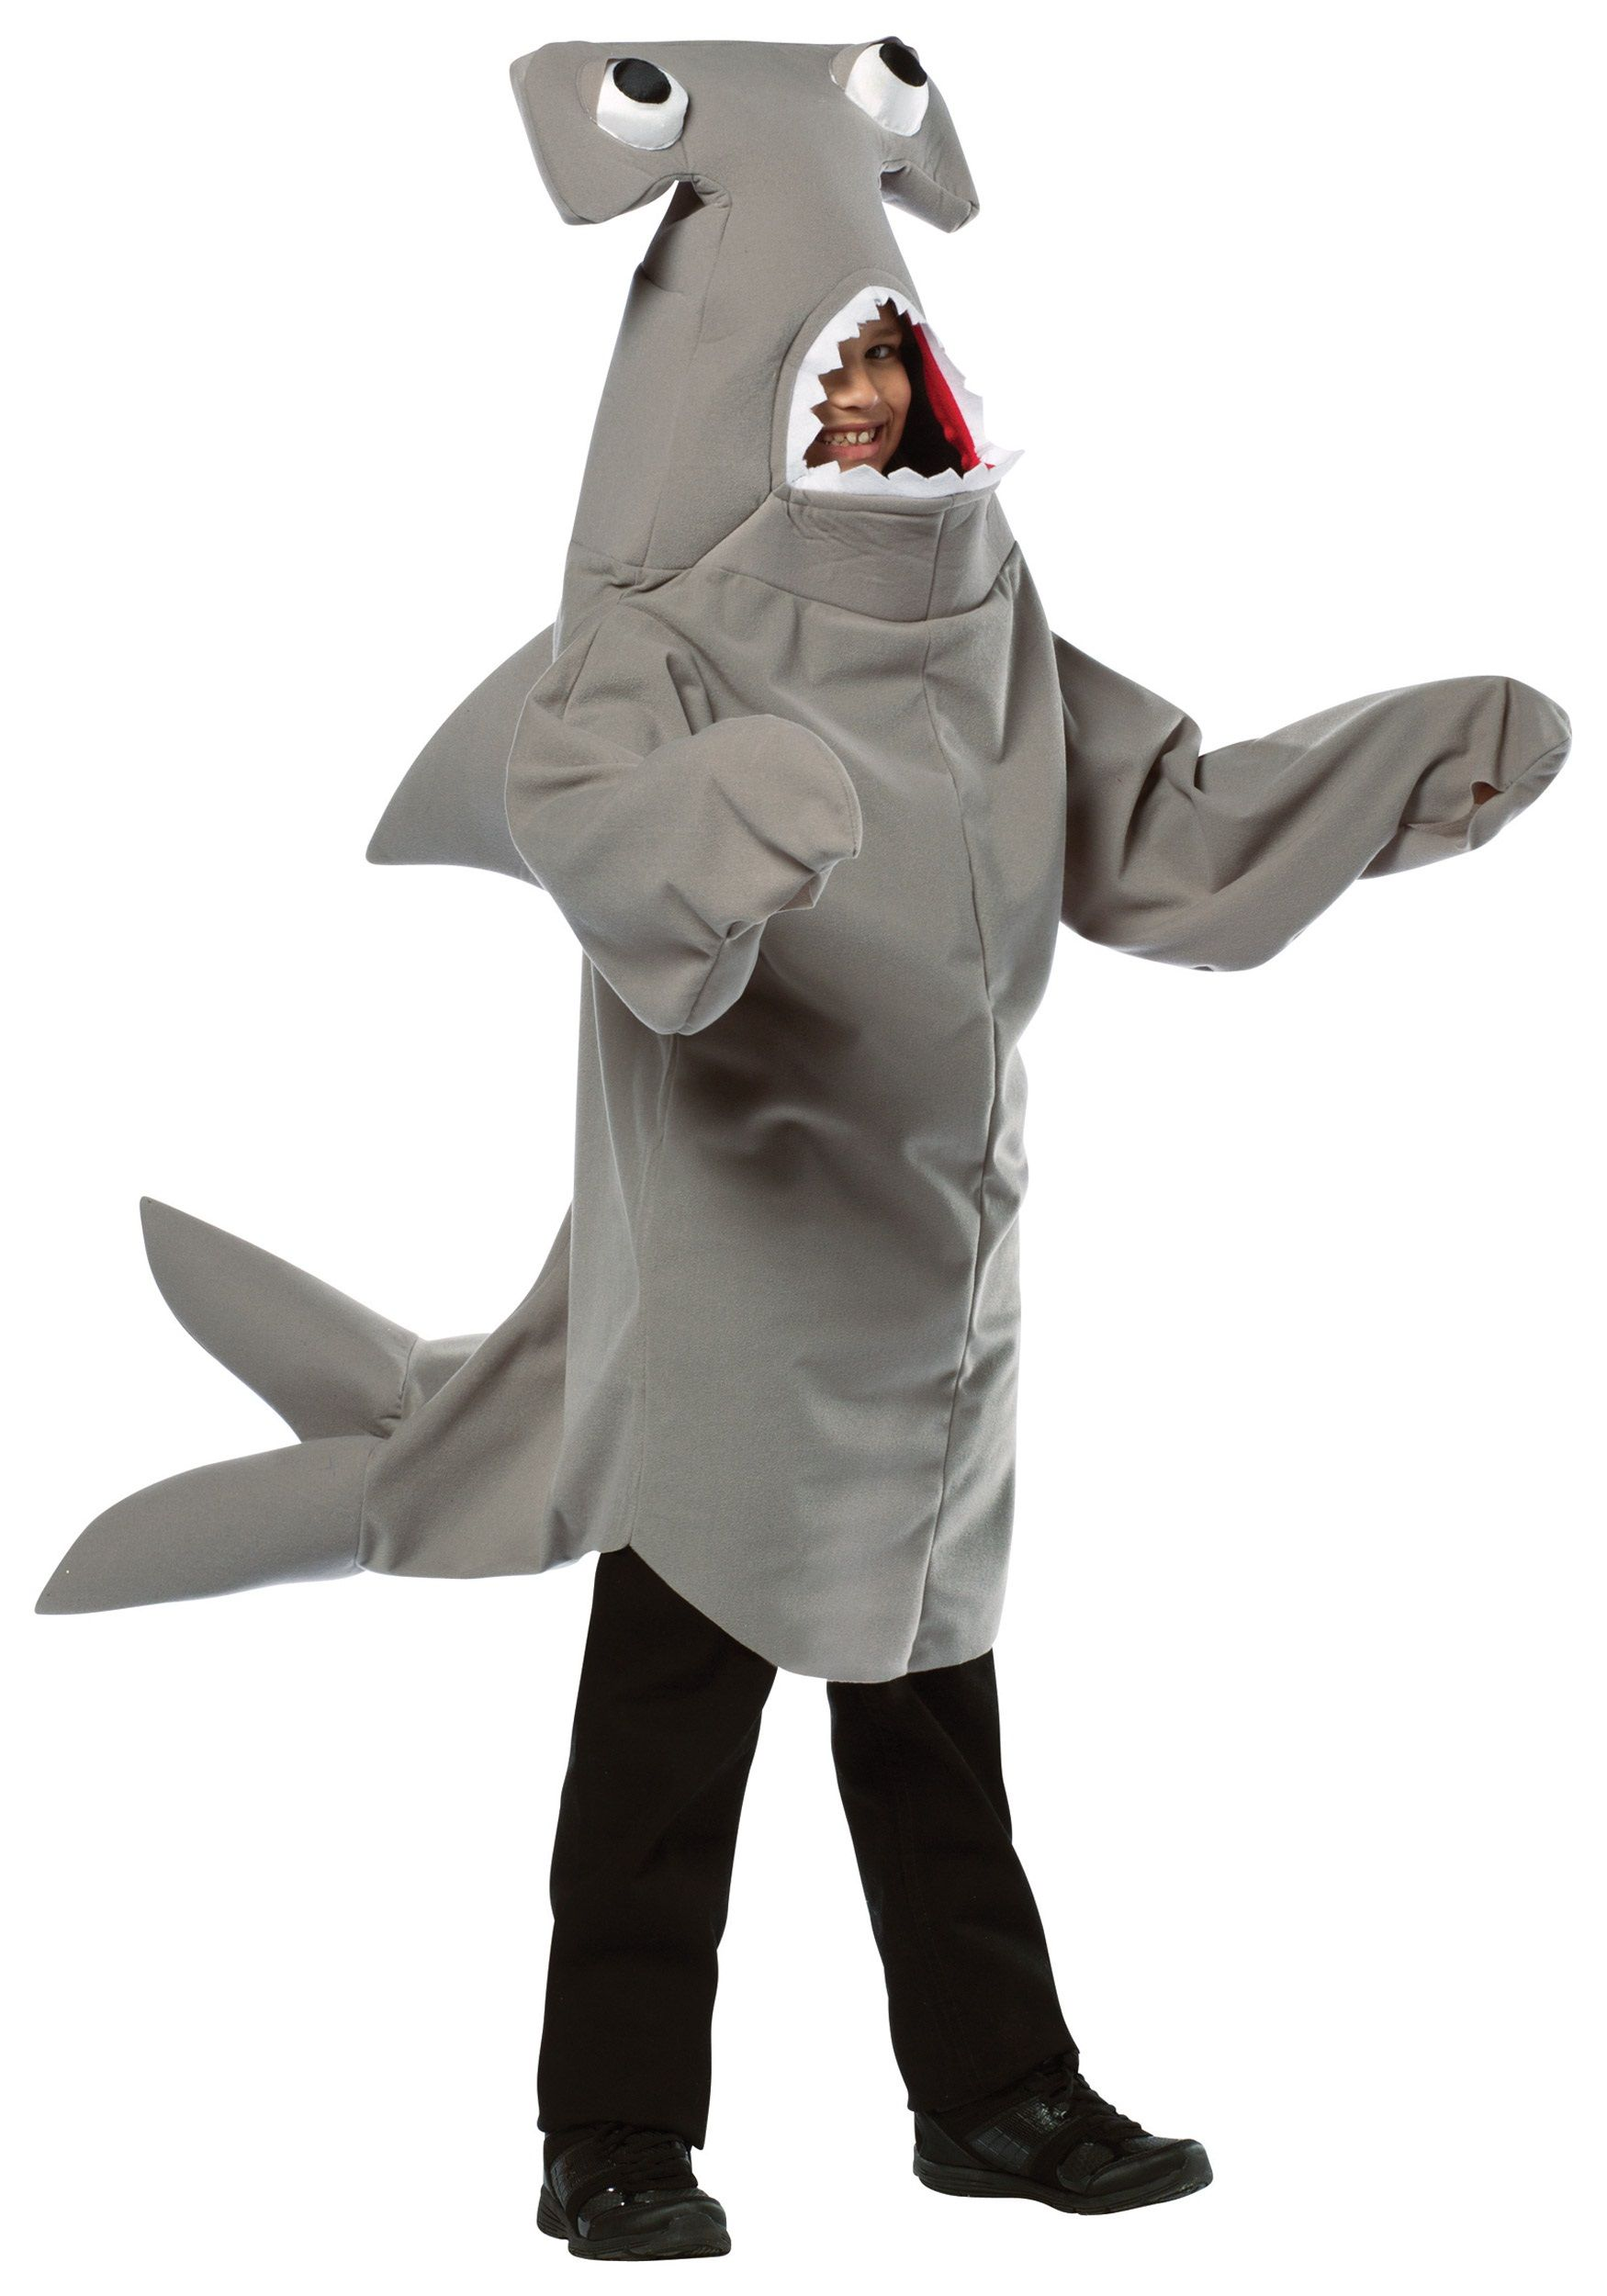 hammerhead shark costume - Halloween Costume Shark